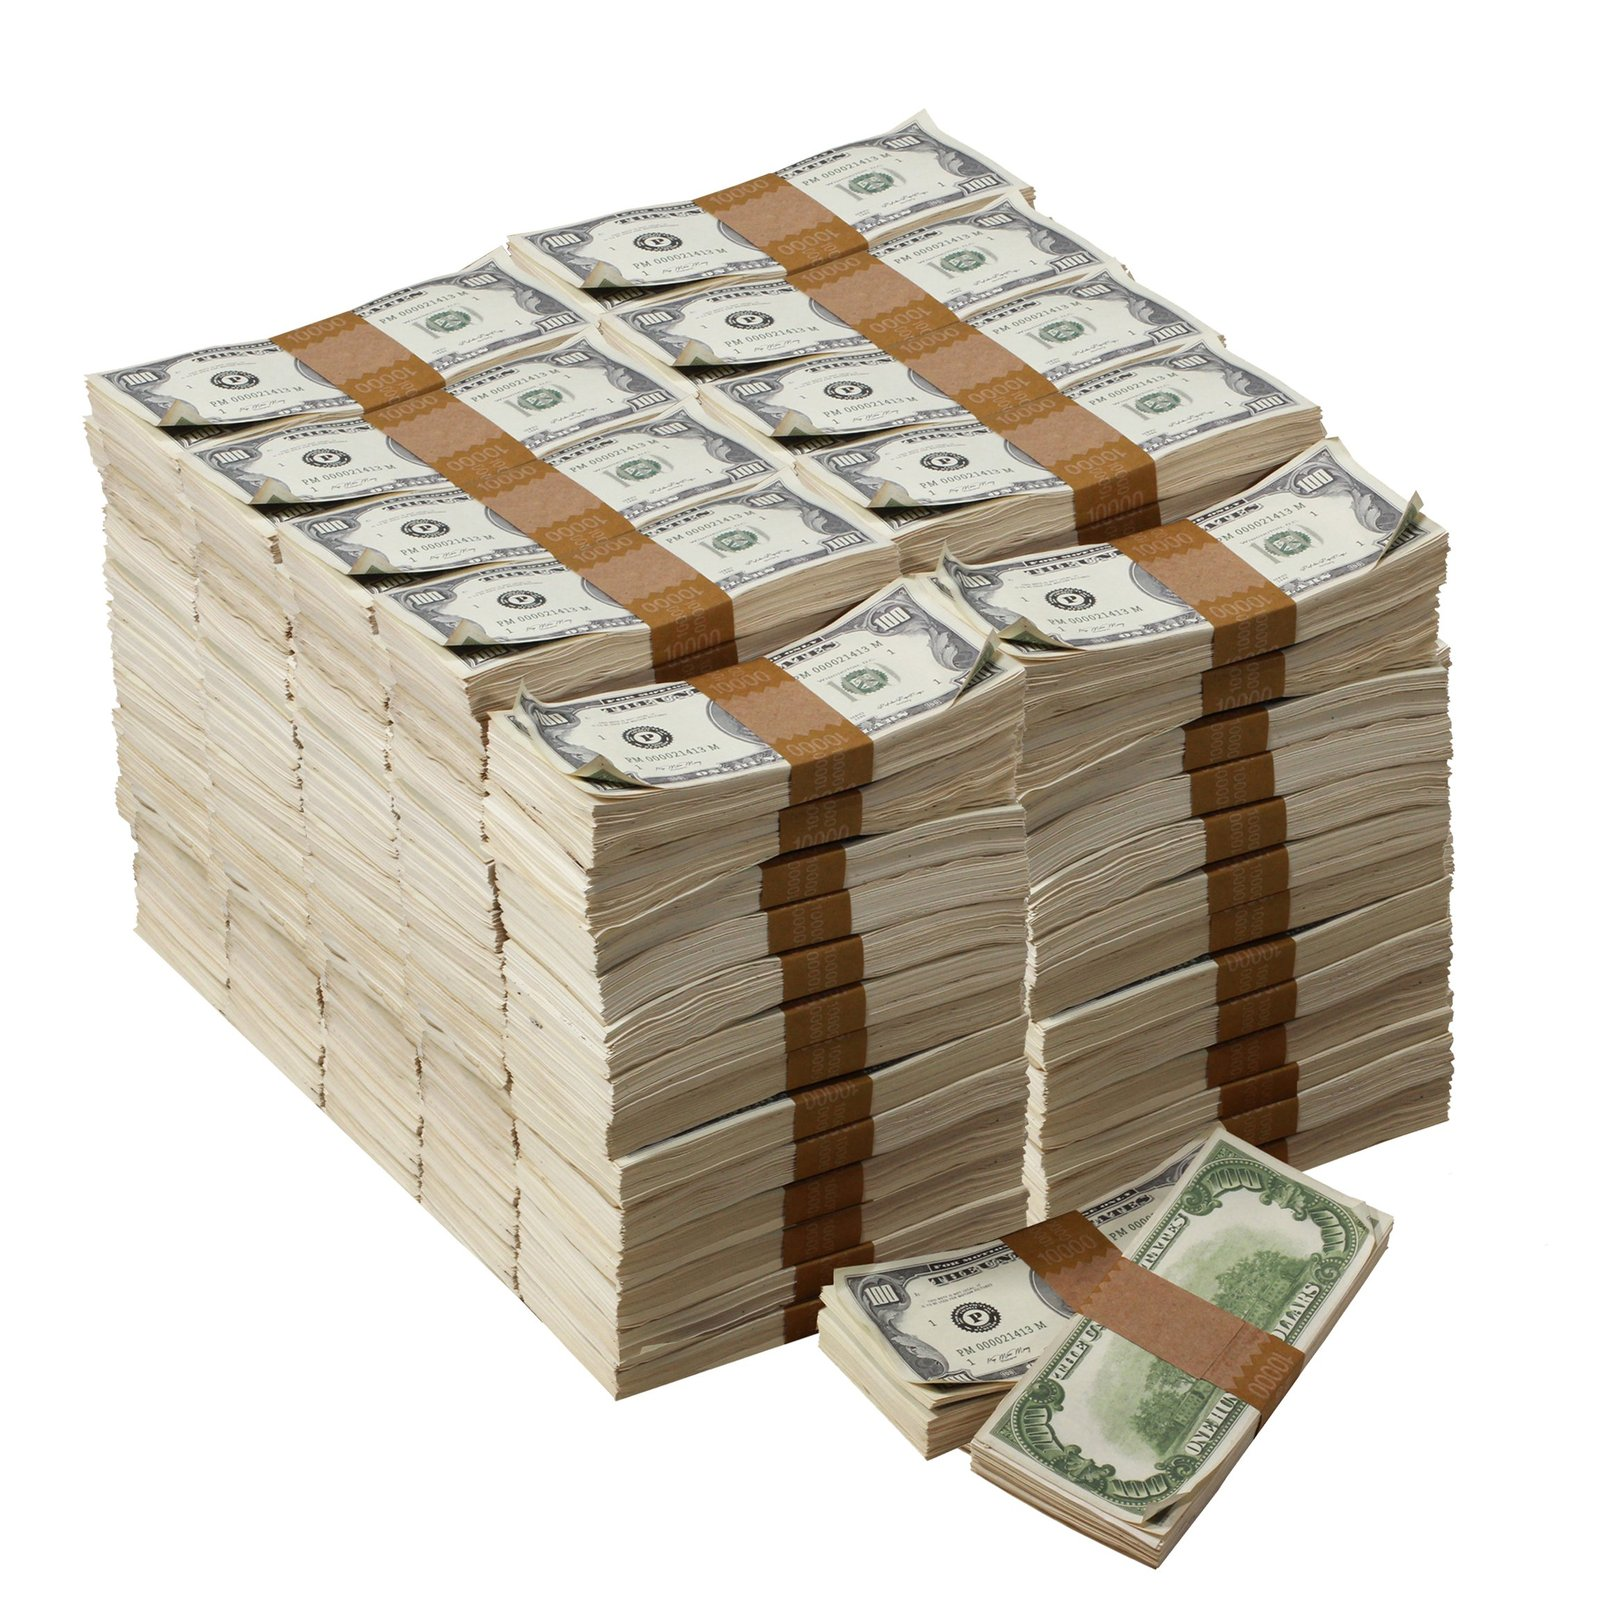 1980s Series $100s Aged $1,000,000 Full Print Package Realistic Prop Money